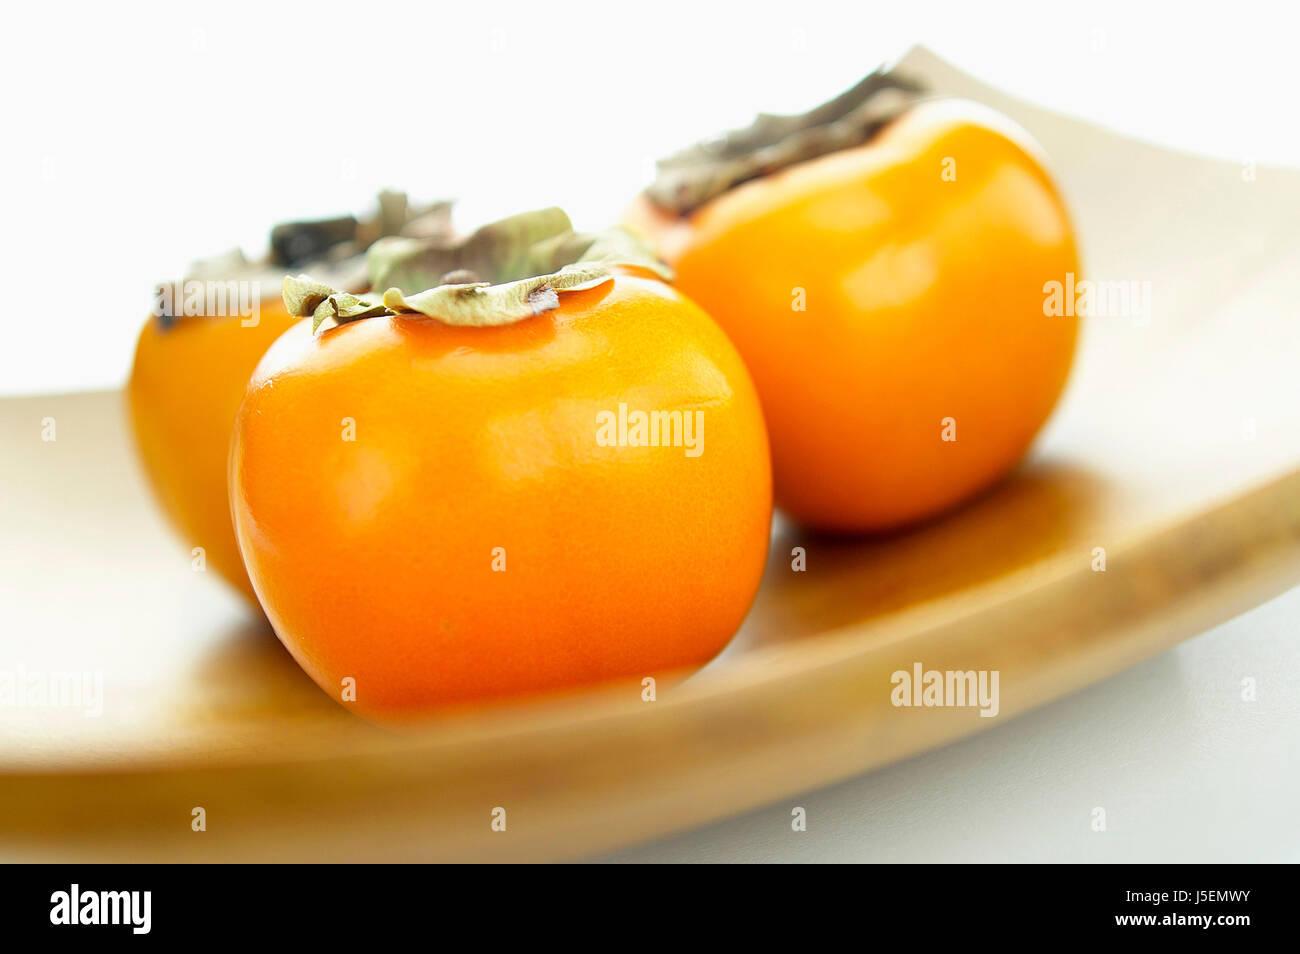 how to eat persimmon sharon fruit